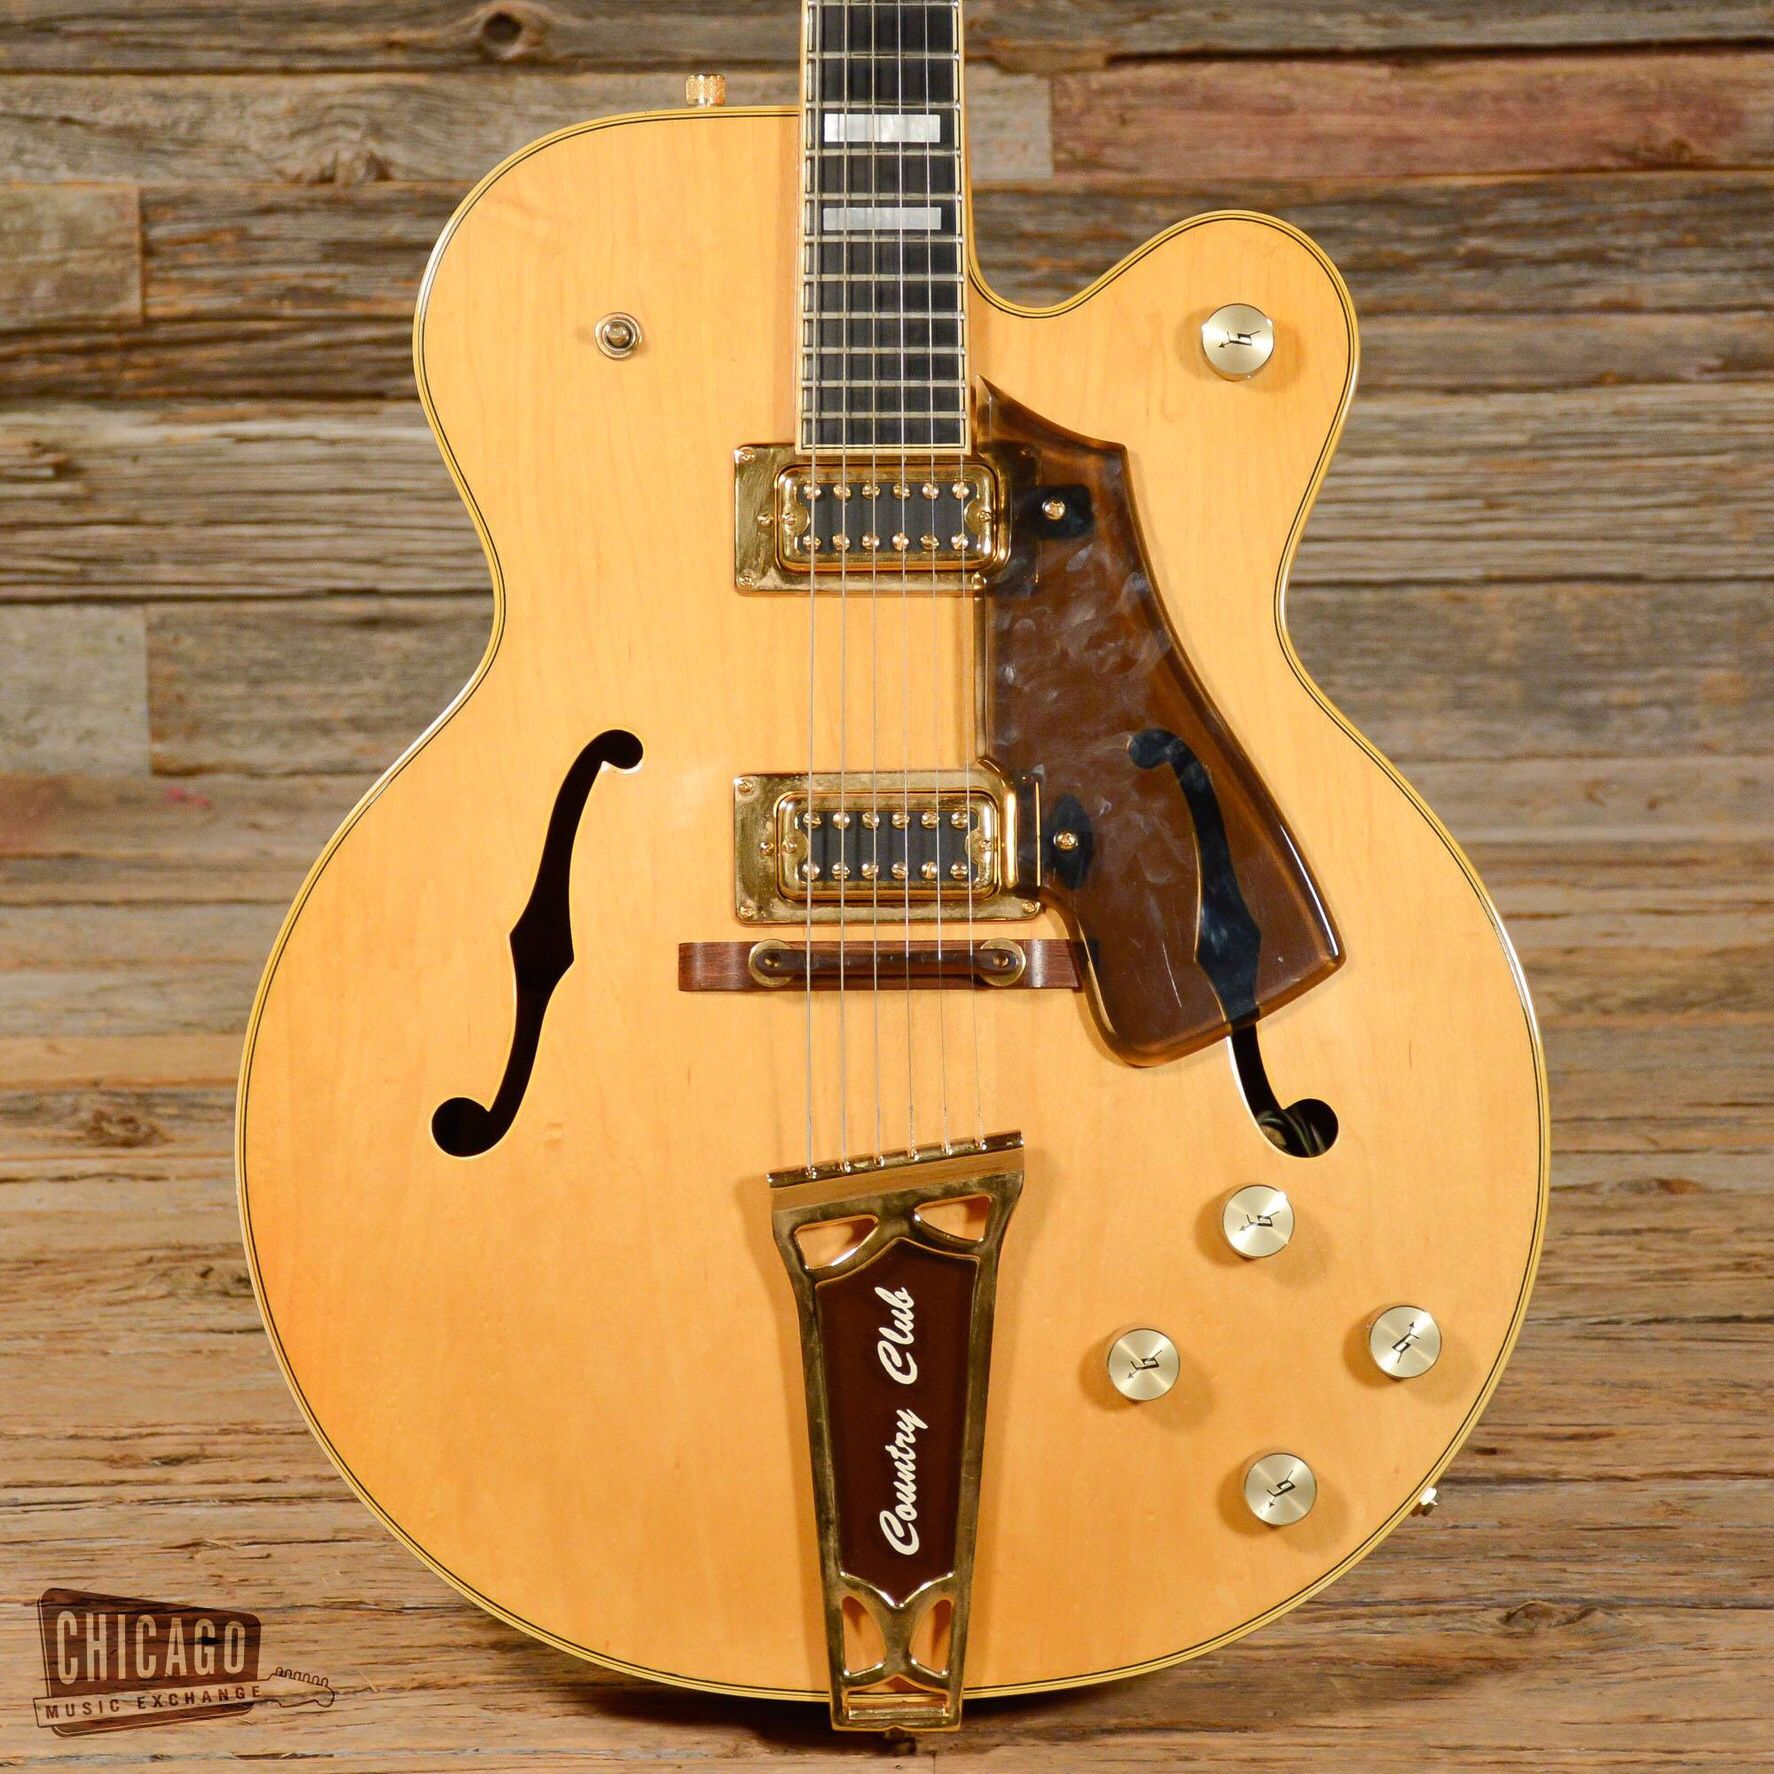 gretsch country gent love it archtop pinterest gretsch gretsch g5120 pickups wiring layout gretsch country [ 1774 x 1774 Pixel ]